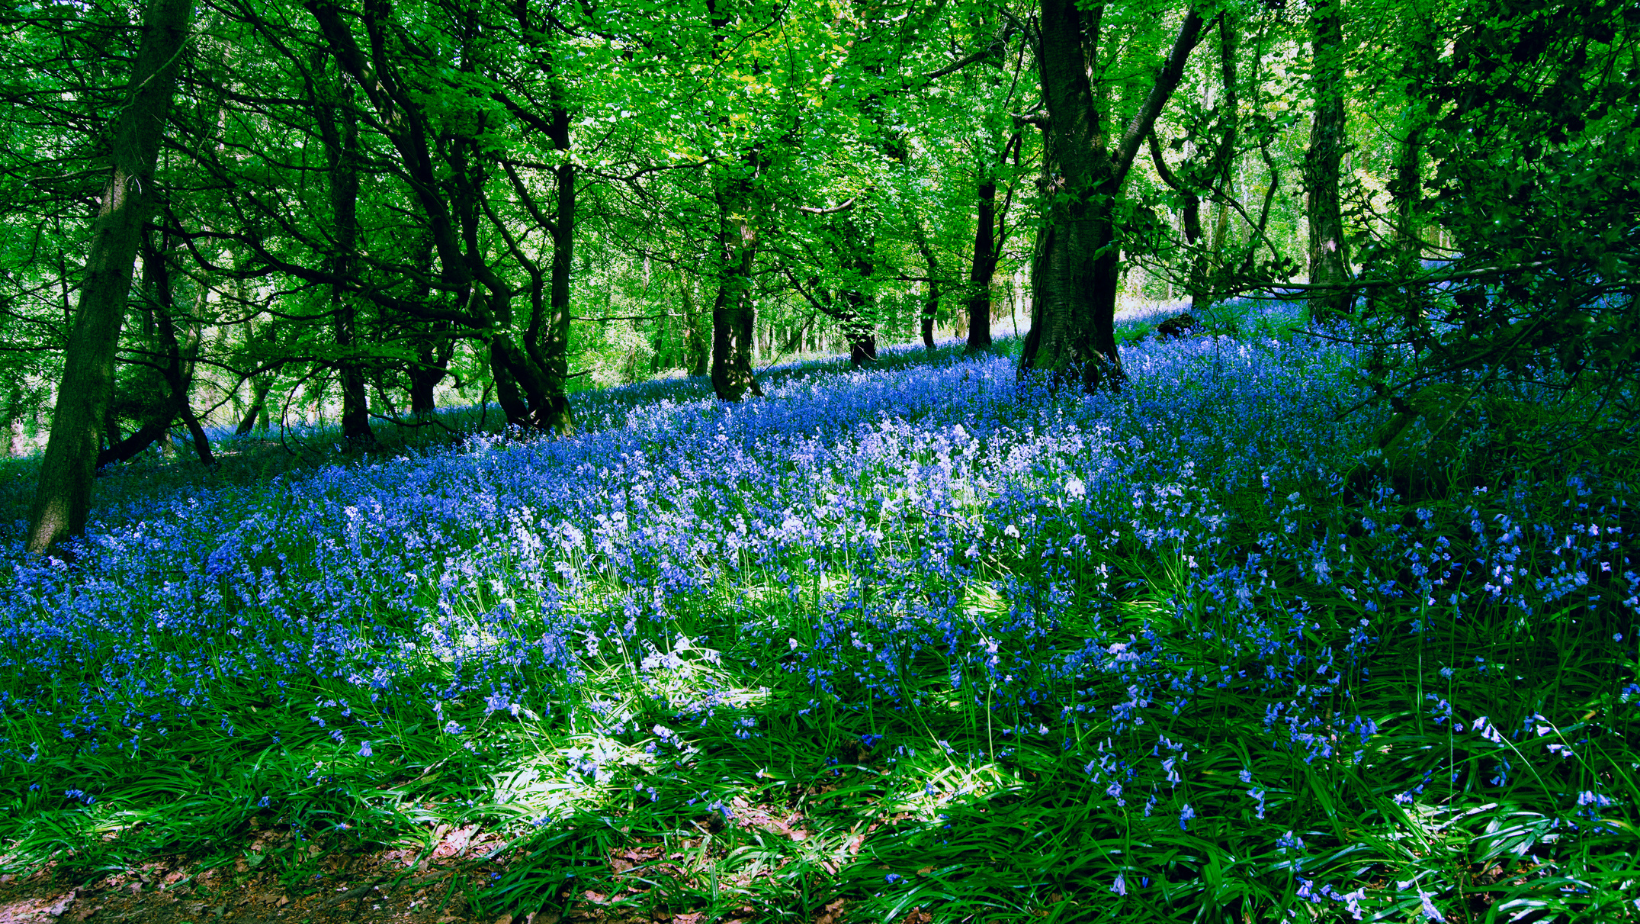 Bluebell Woods with the sun streaming through the trees